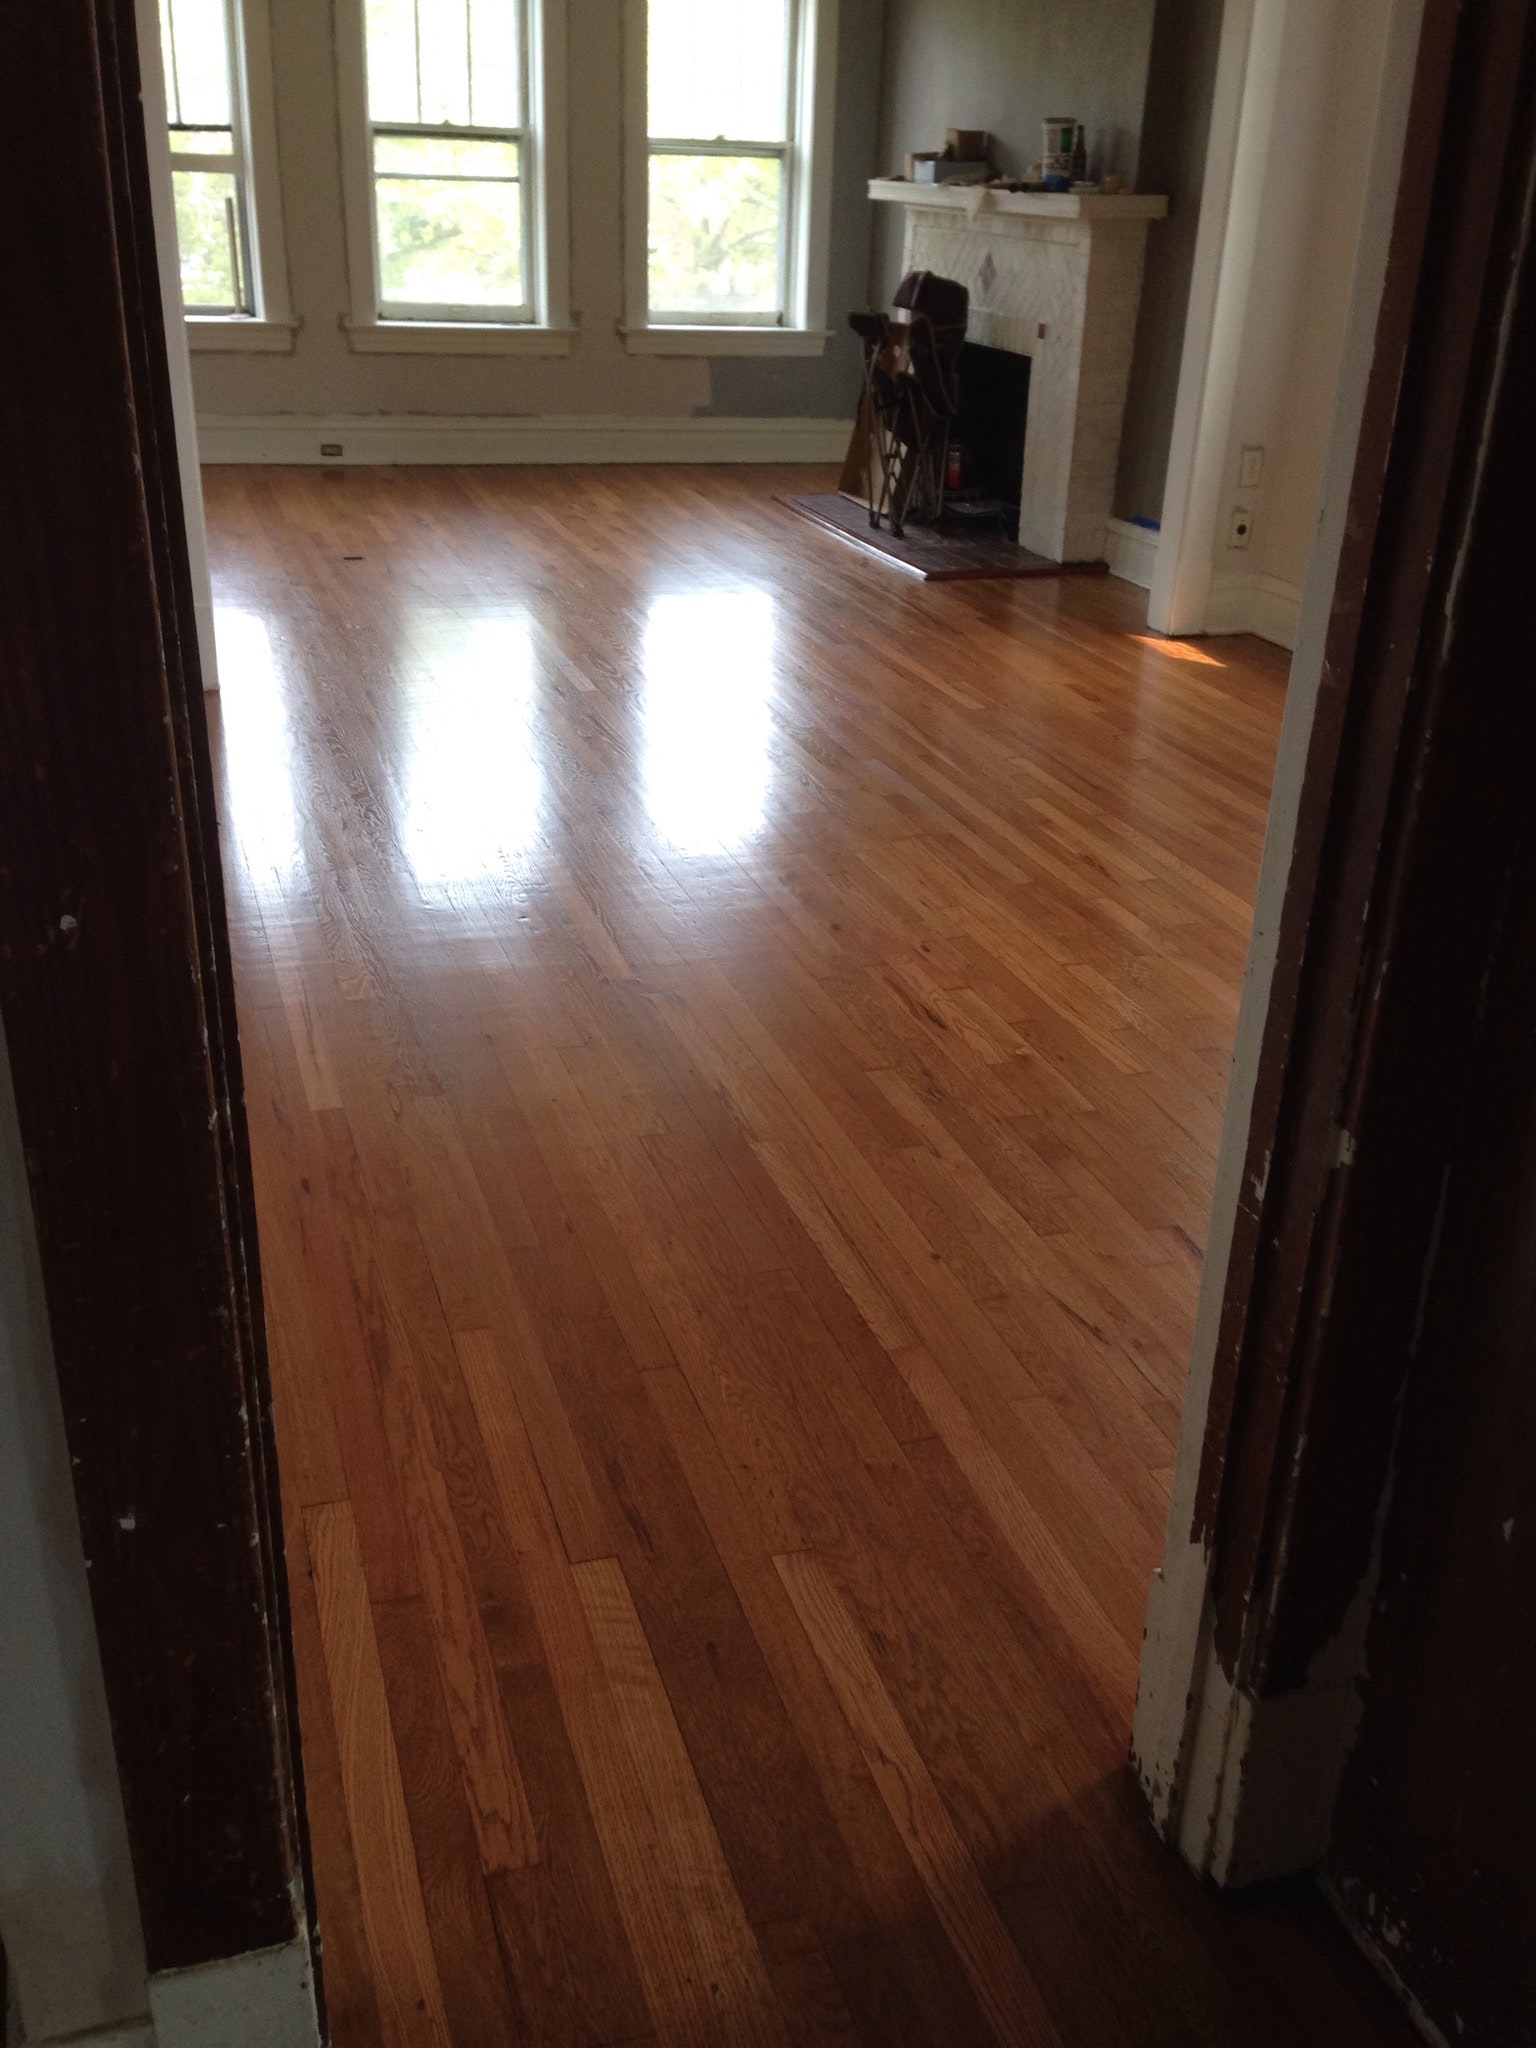 How Often Should Hardwood Floors Be Refinished